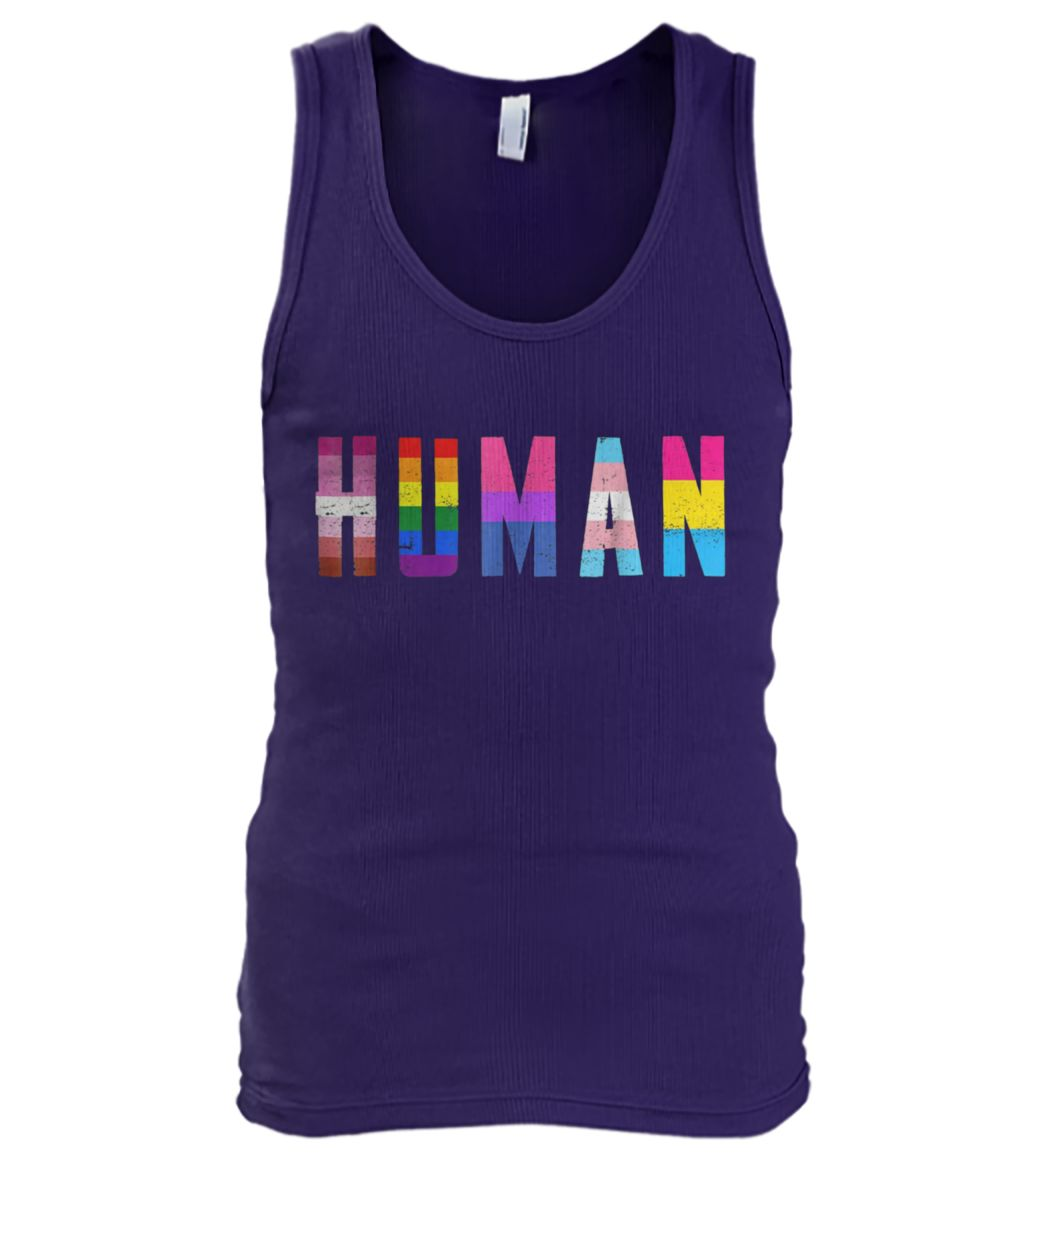 Human flag LGBT gay pride month transgender men's tank top